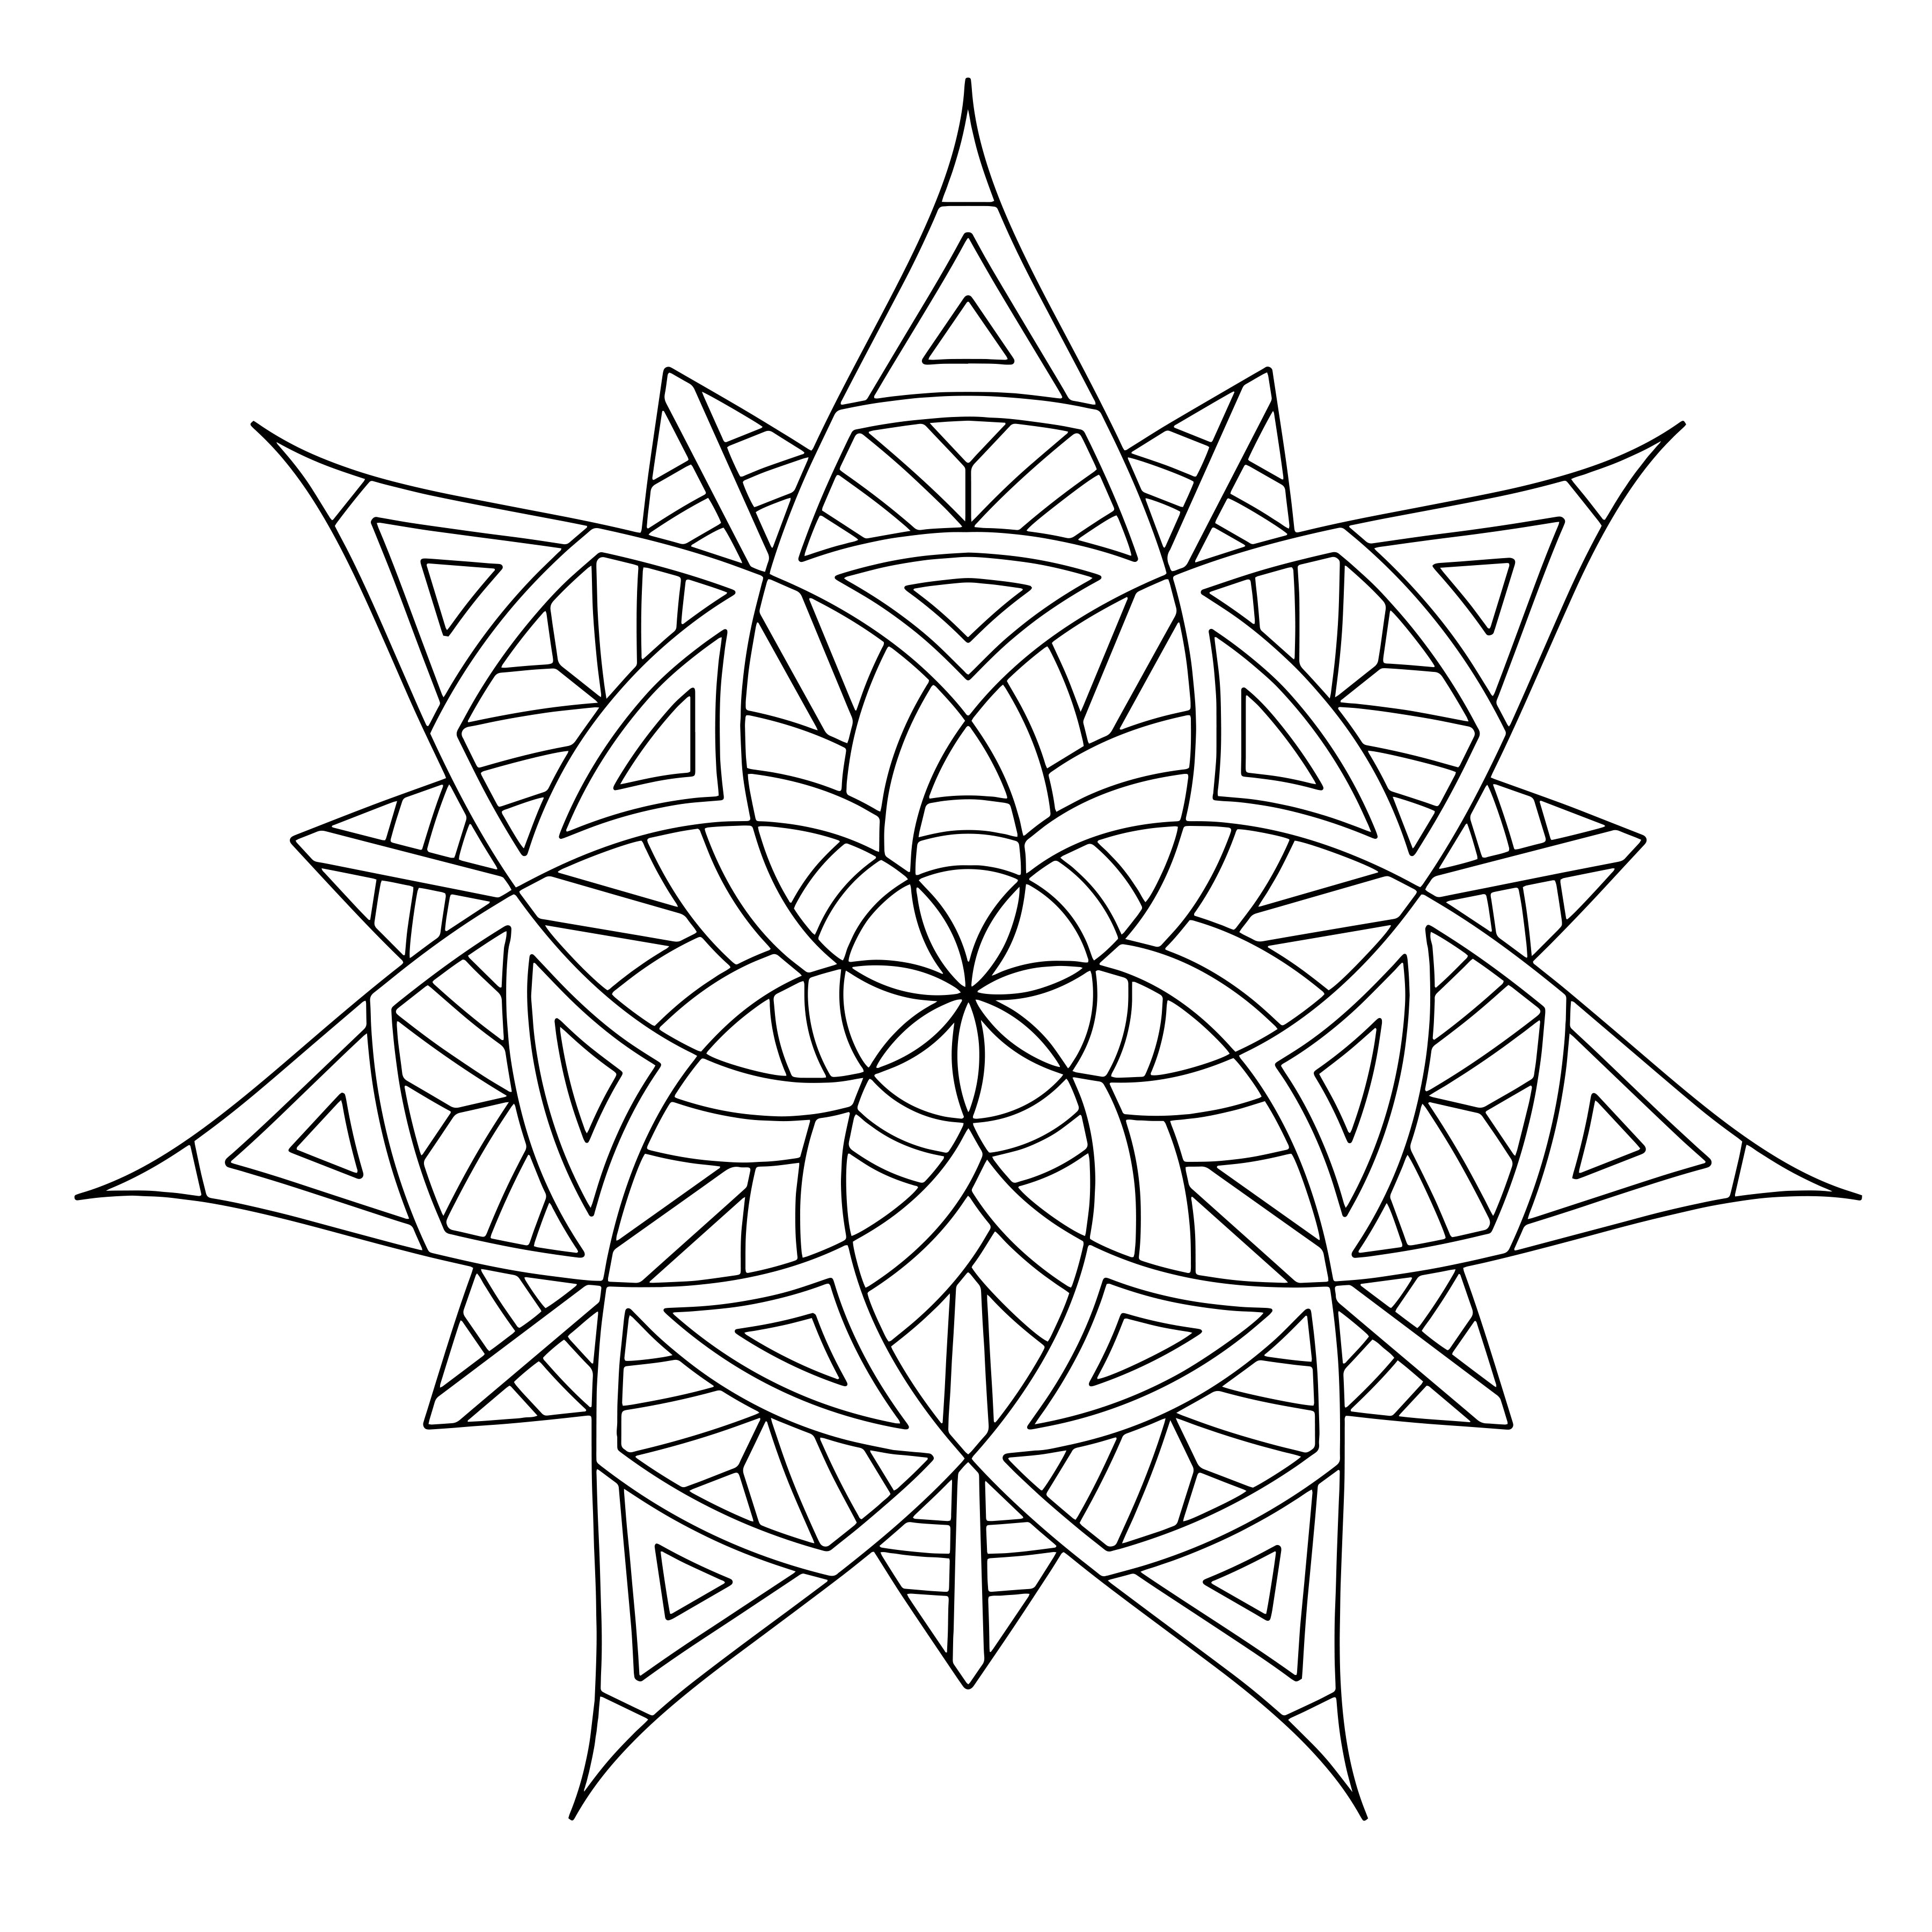 patterns to color in 16 cool designs patterns to color images cool design color patterns in to